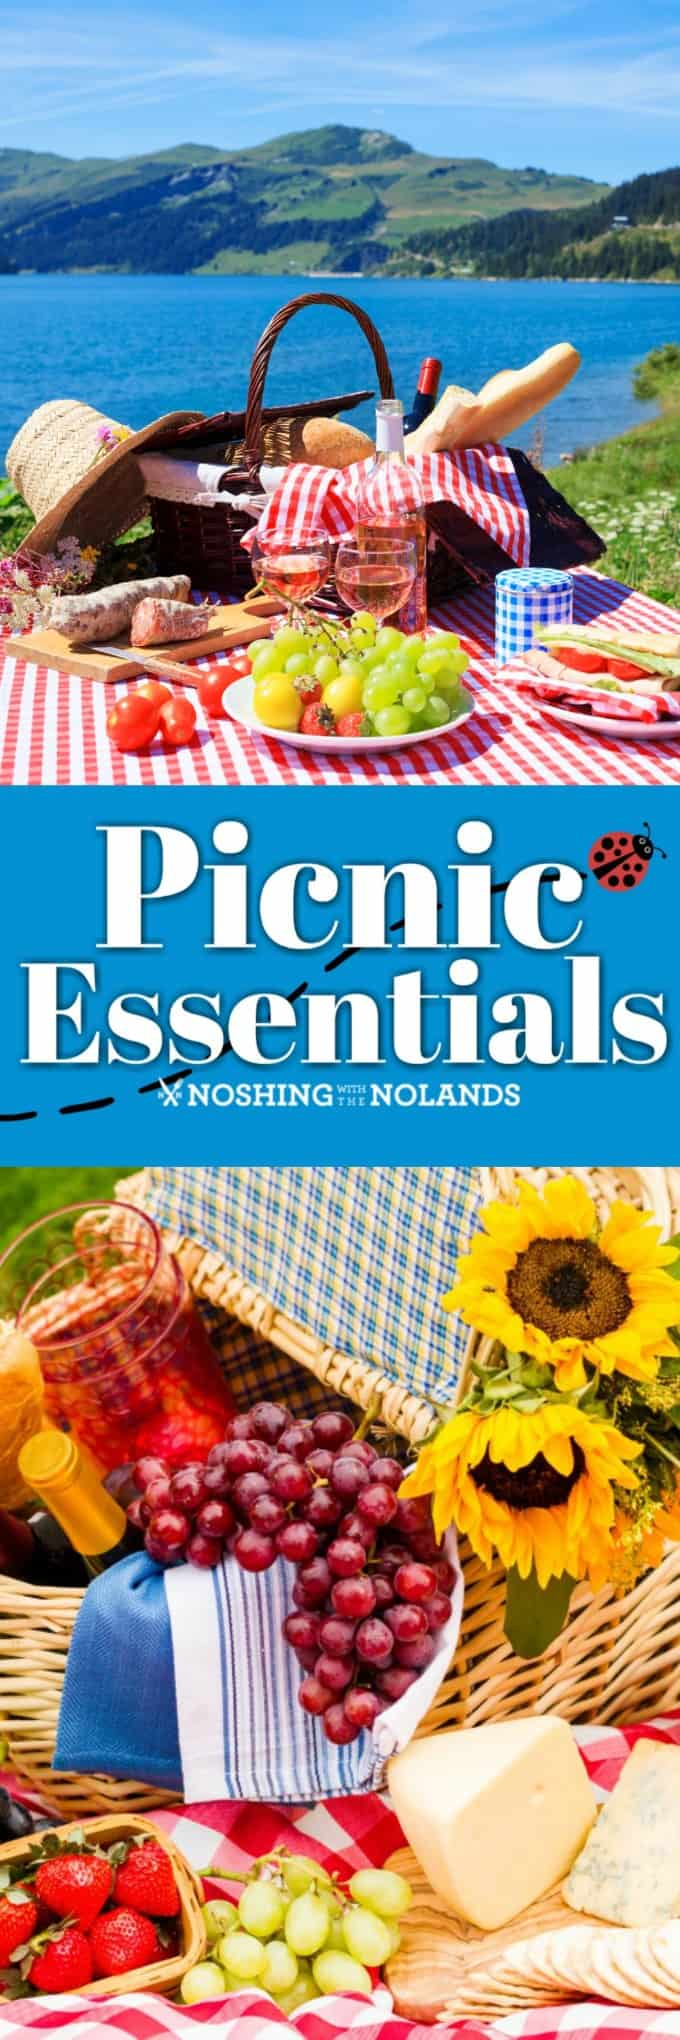 Picnic Essentials is a full guide to making the best picnic ever! Get outside and enjoy your summer!! #picnicessentials #picnic #picnicbasket